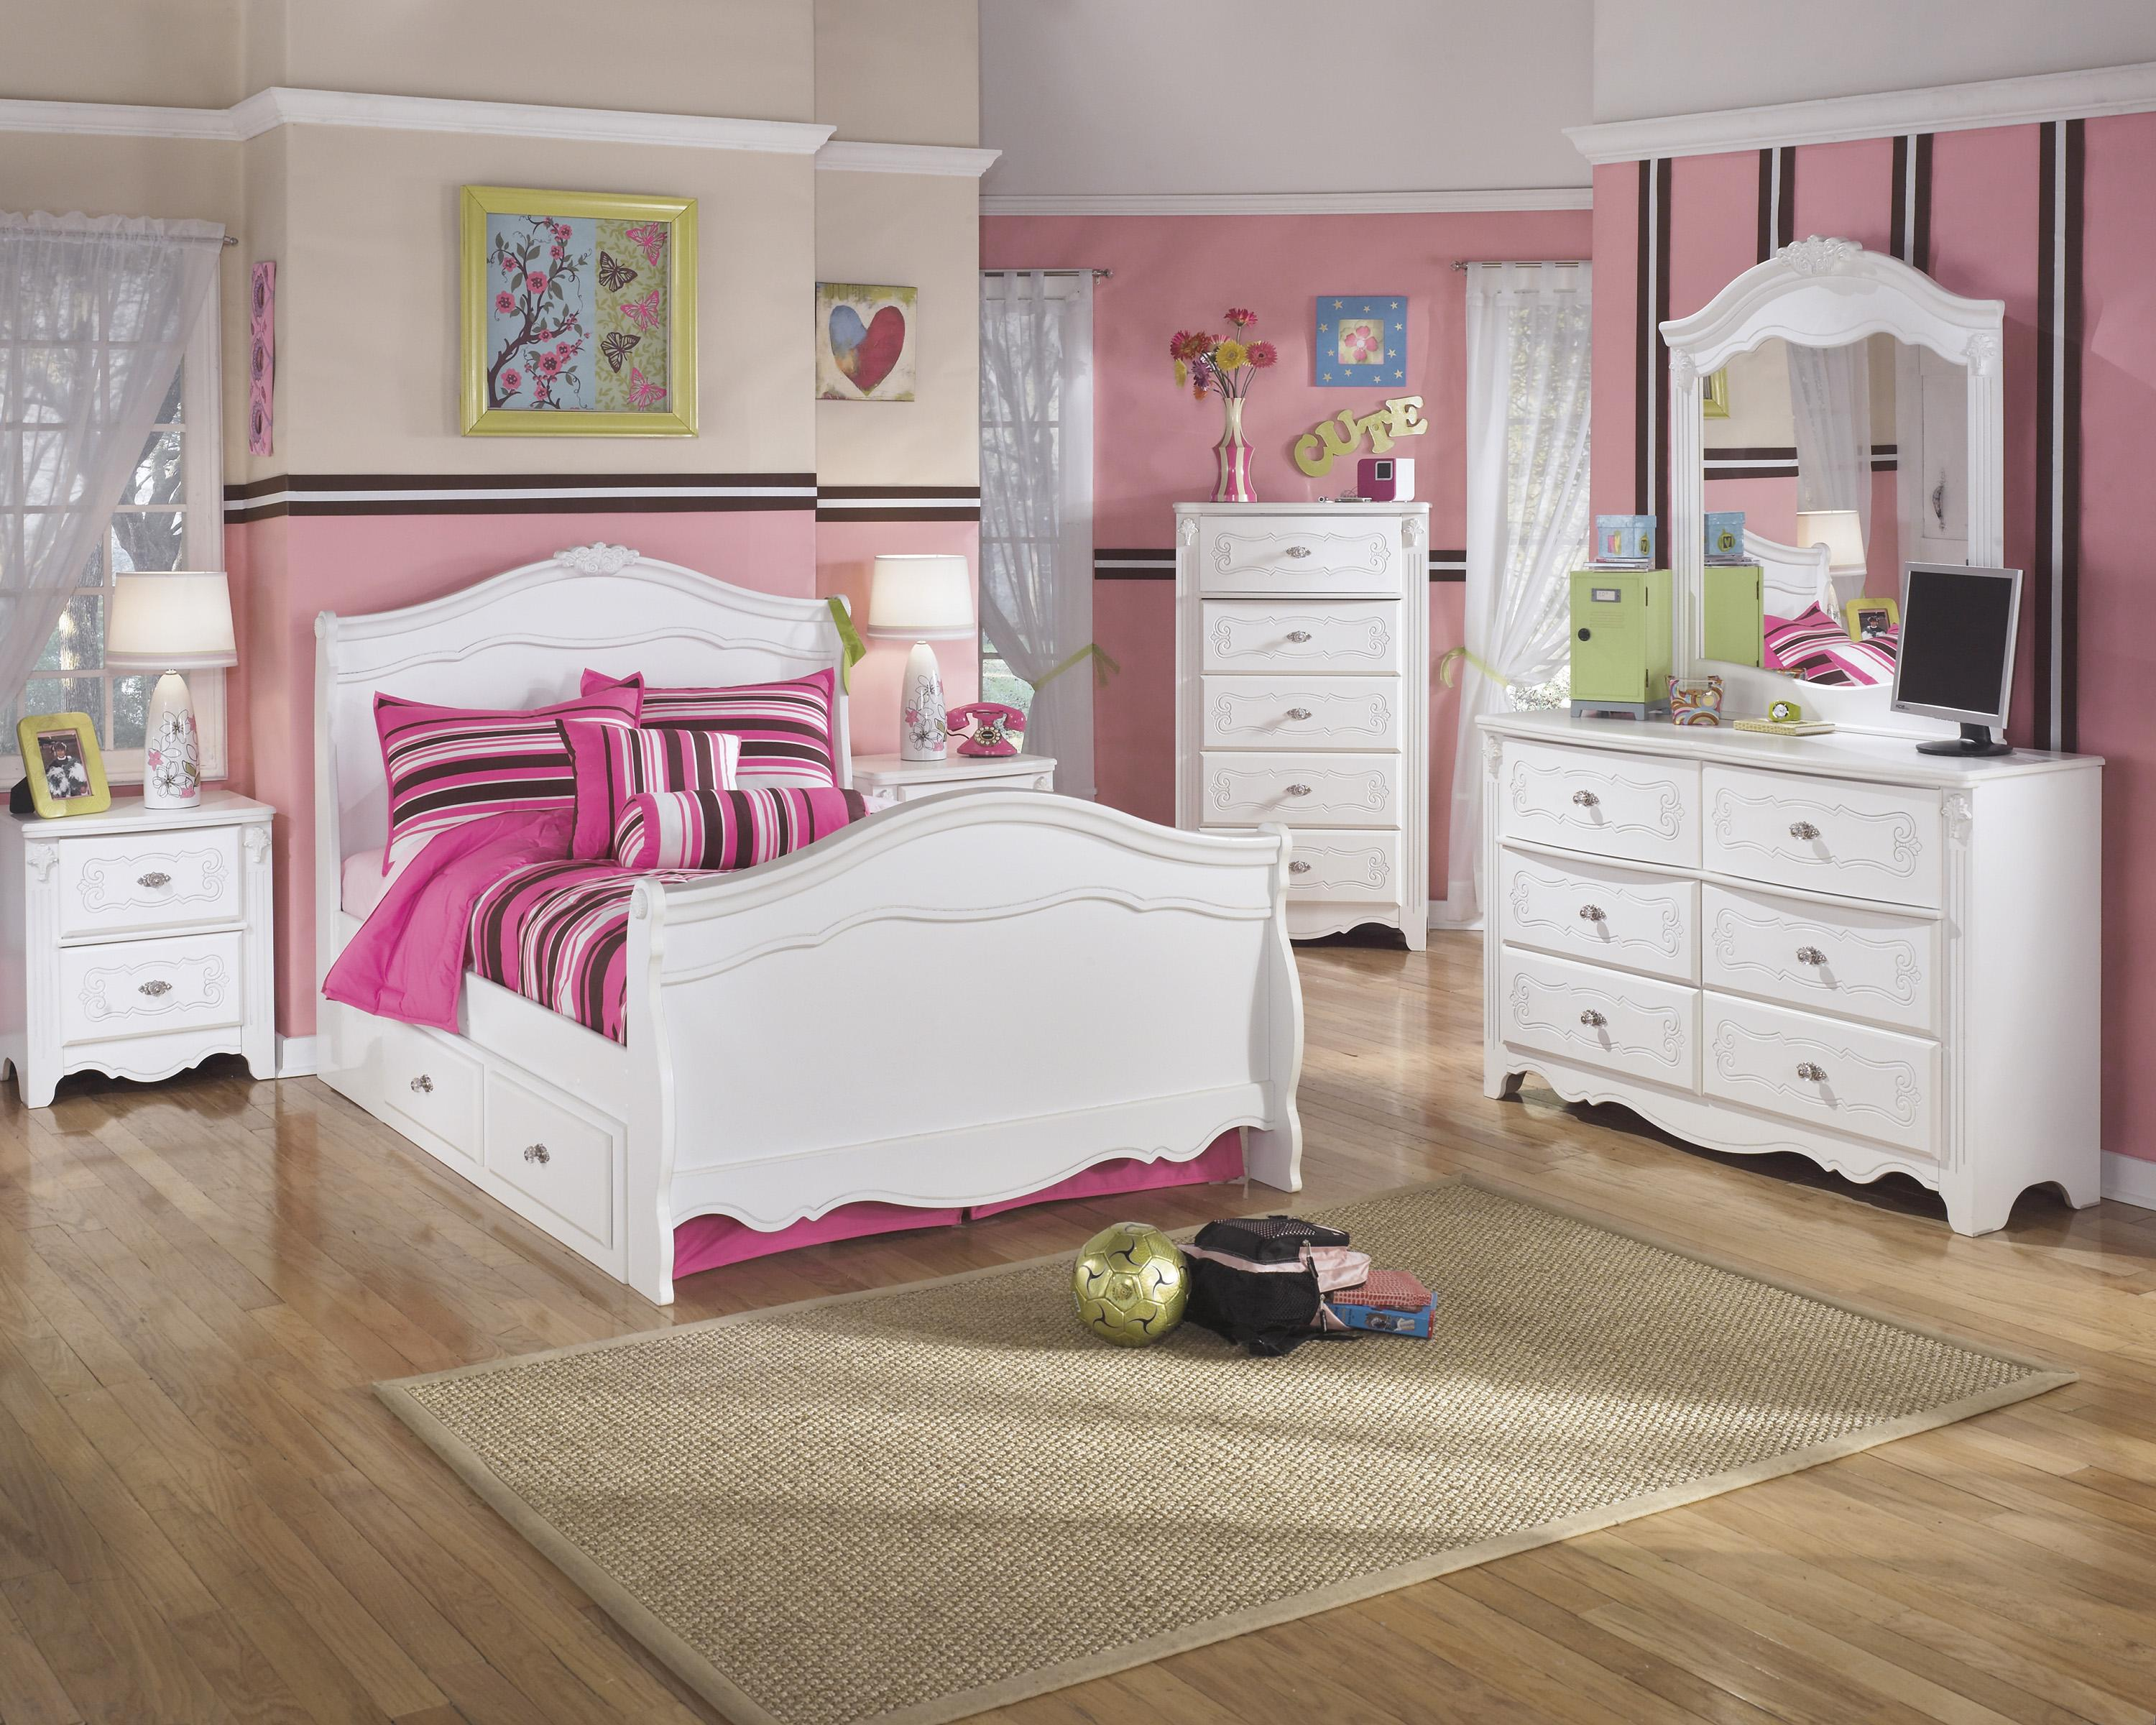 Exquisite Full Bedroom Group by Signature Design by Ashley at Furniture Barn